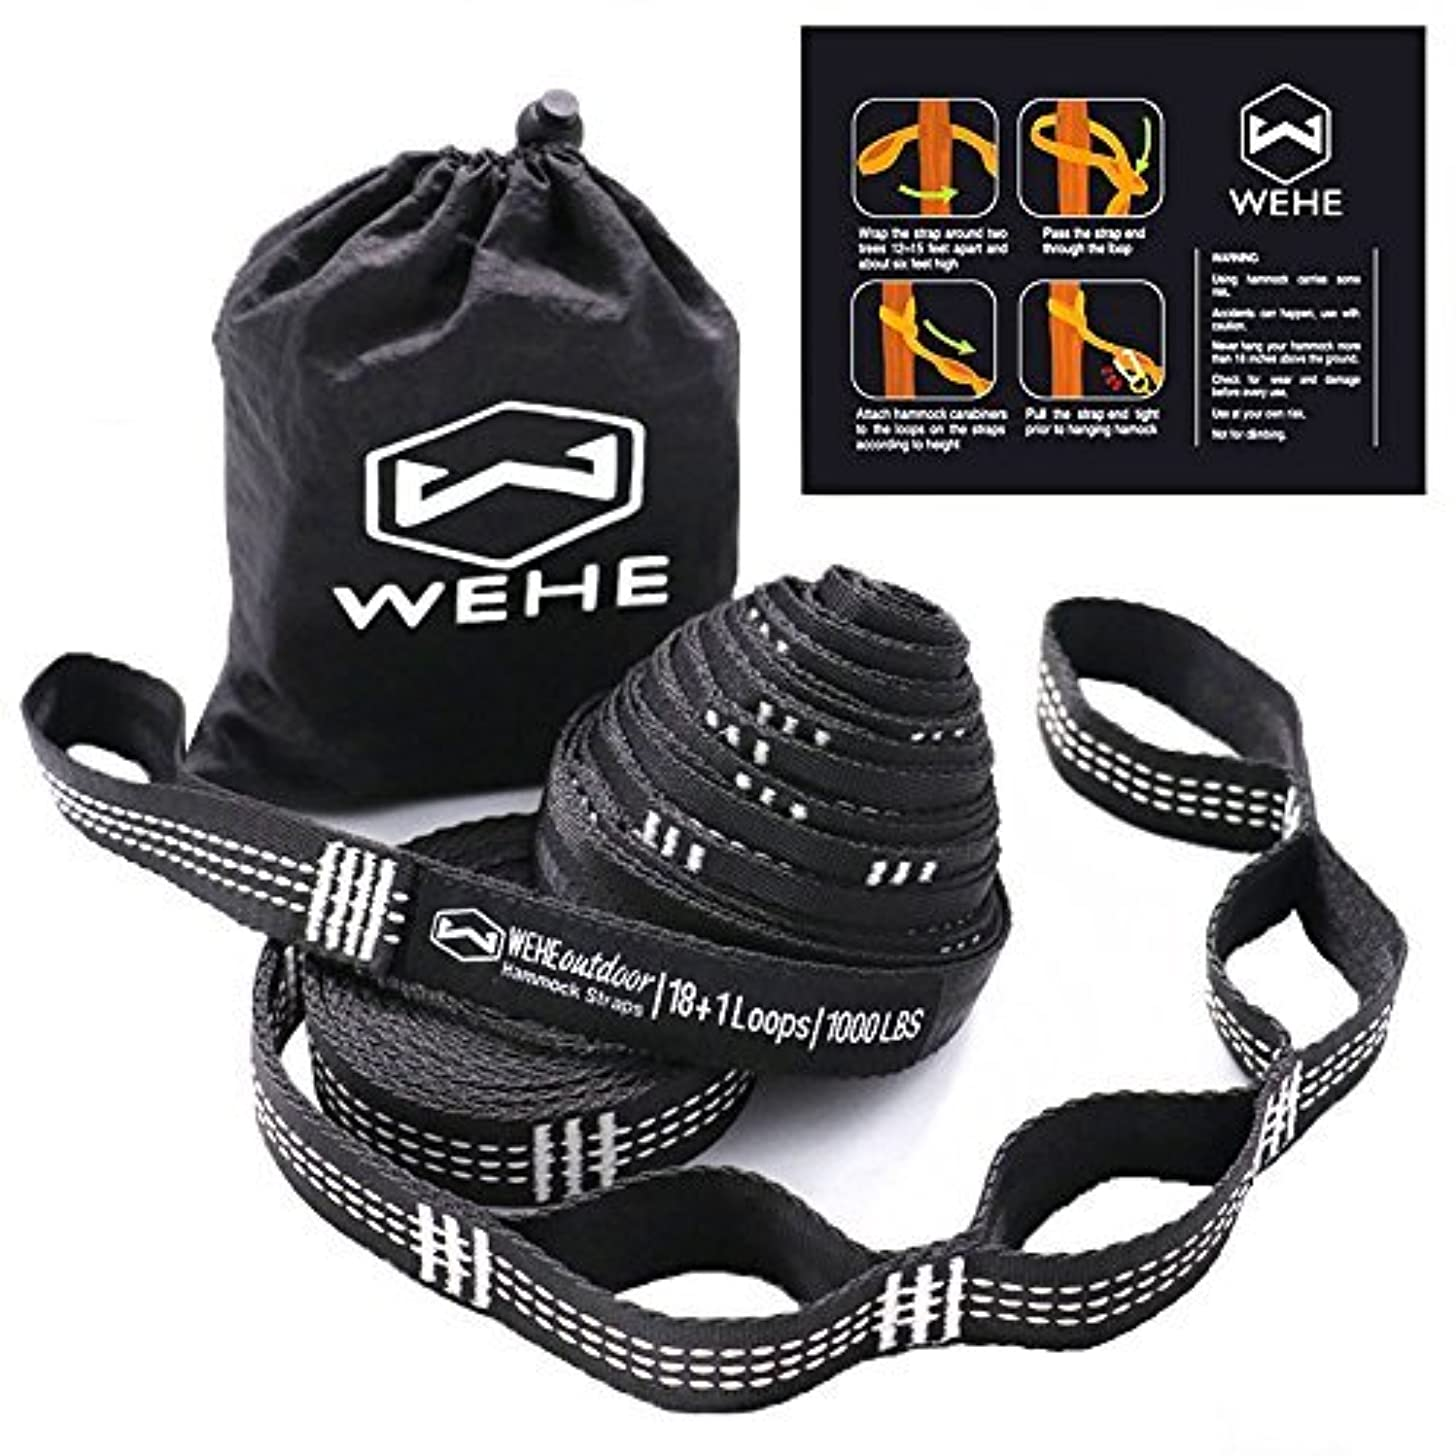 WEHE Hammock Straps Extra Strong & Lightweight,36 Loops, 2000LBS Breaking Strength,100% No Stretch Polyester,Tree Friendly,Quick&Easy Setup Best Suspension System